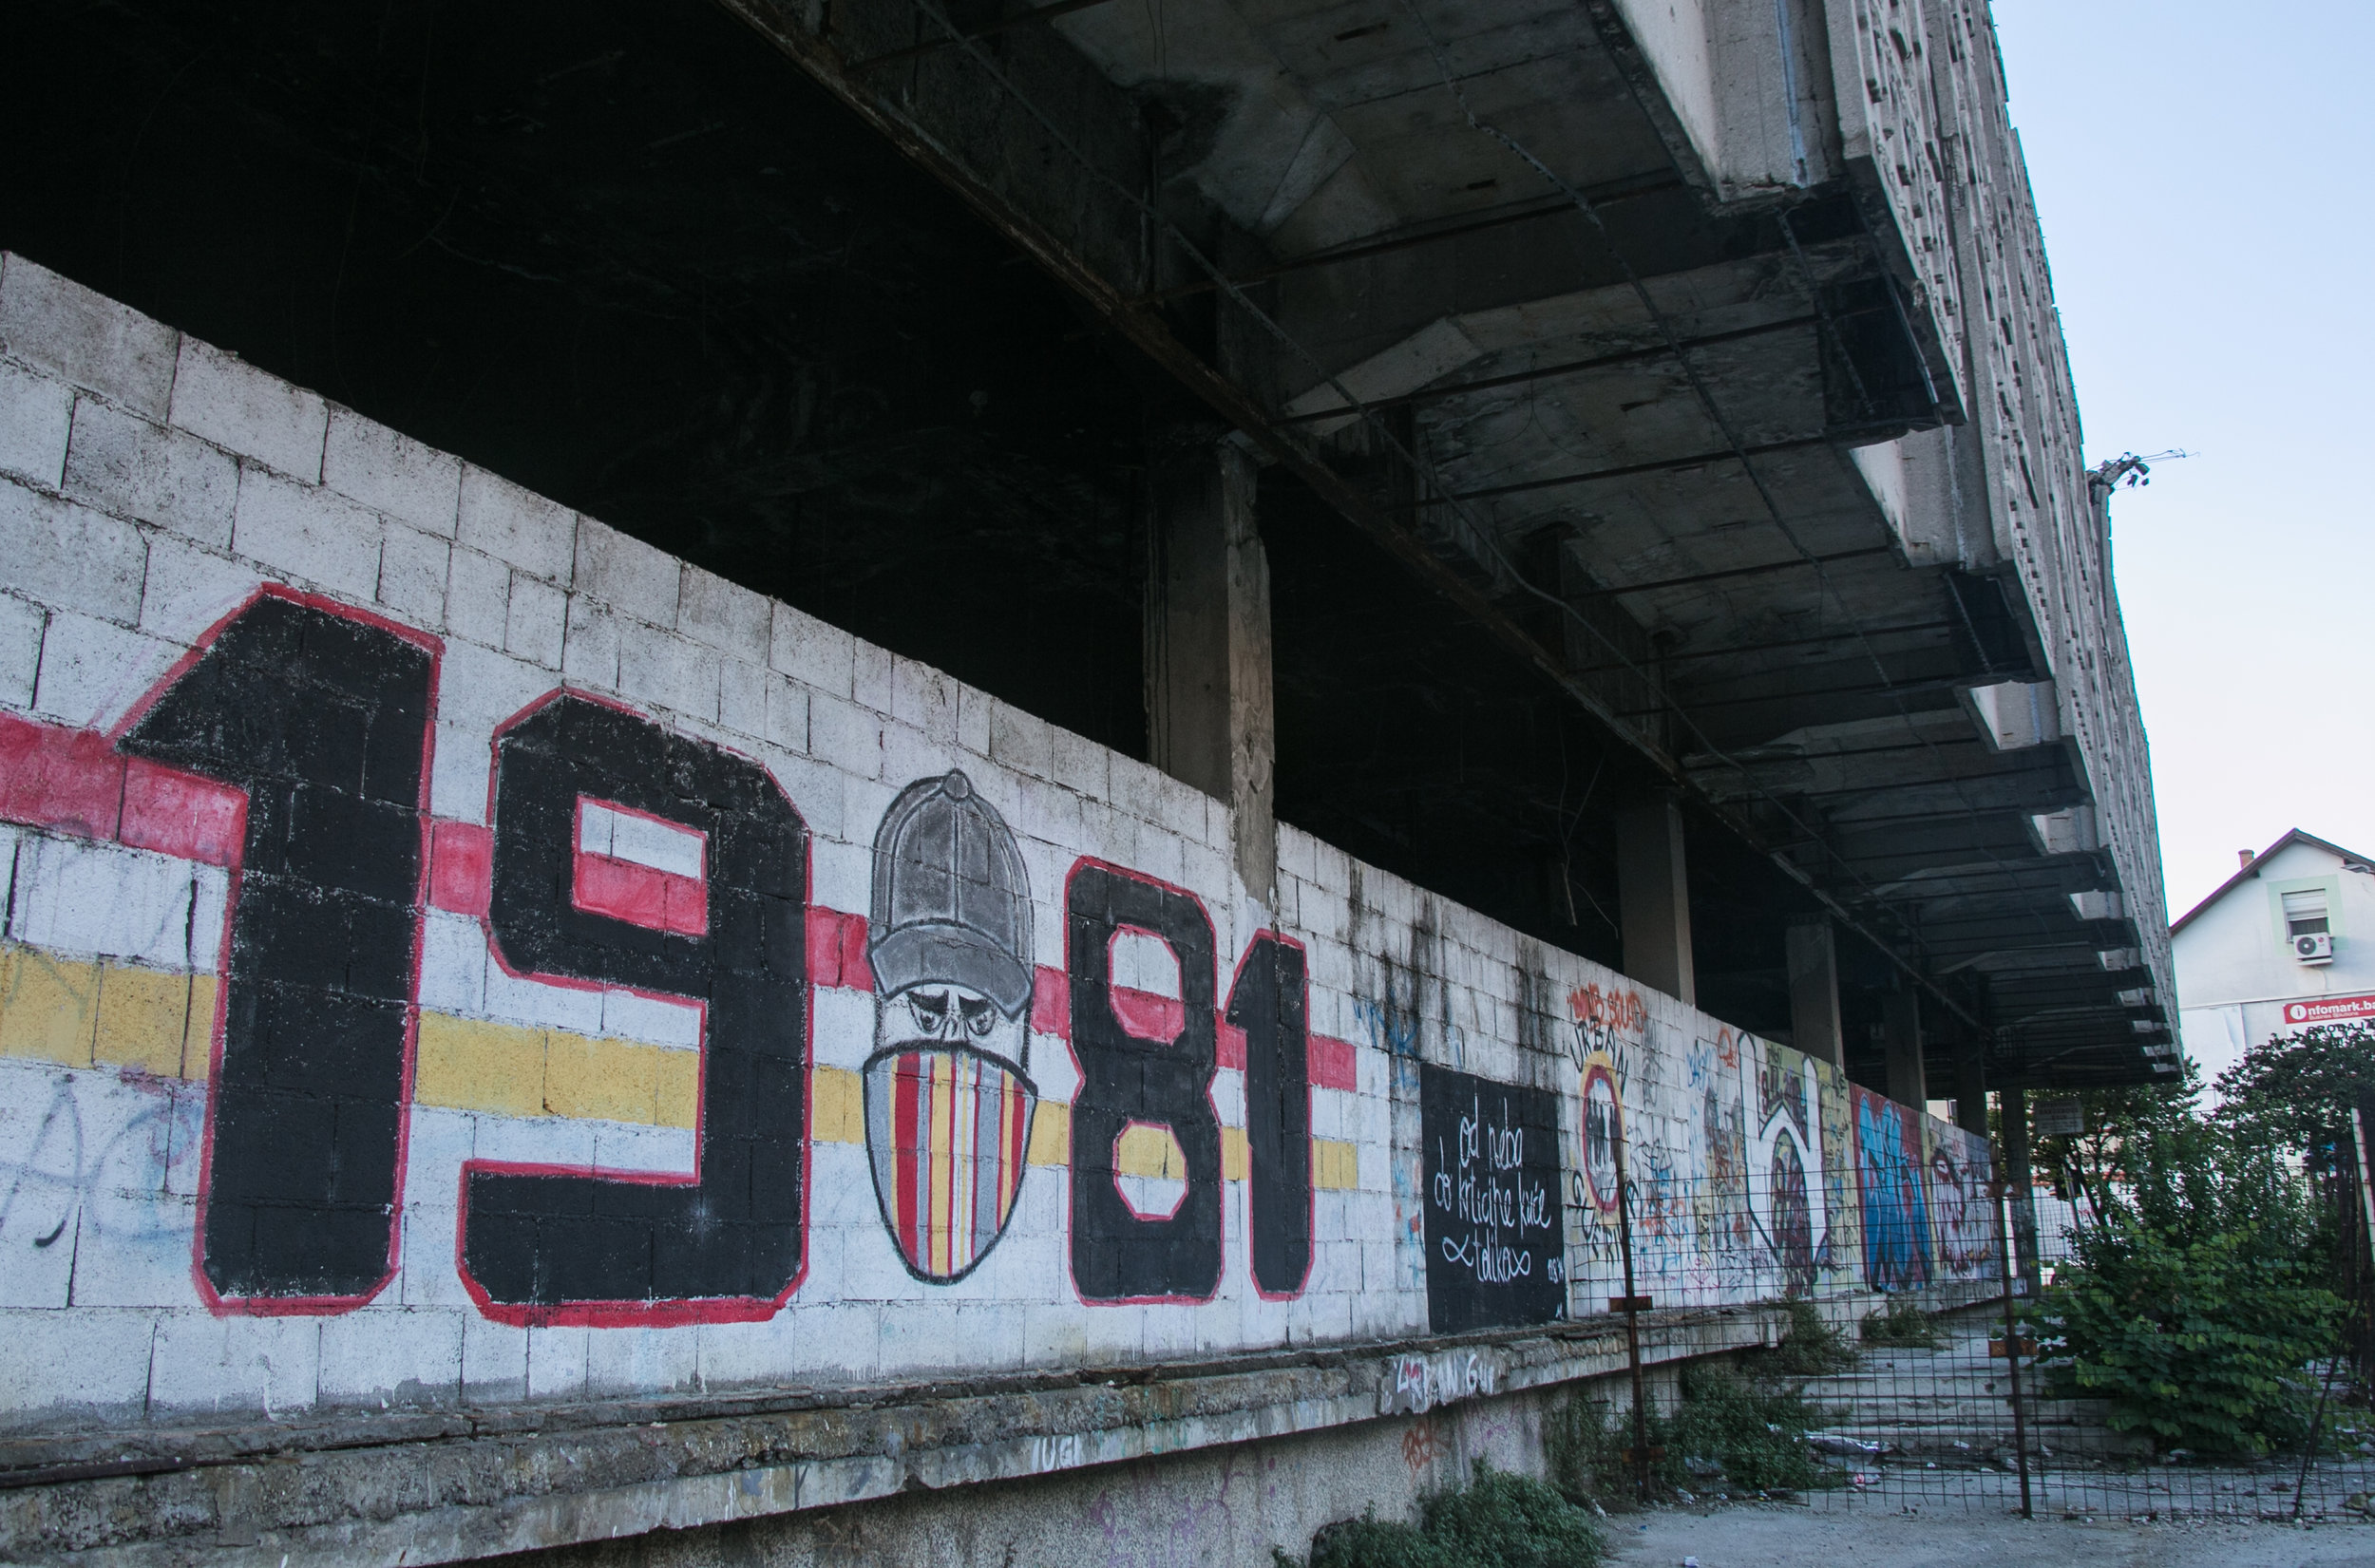 Graffiti tags on the side of building blown out by missiles in the Bosnian War.